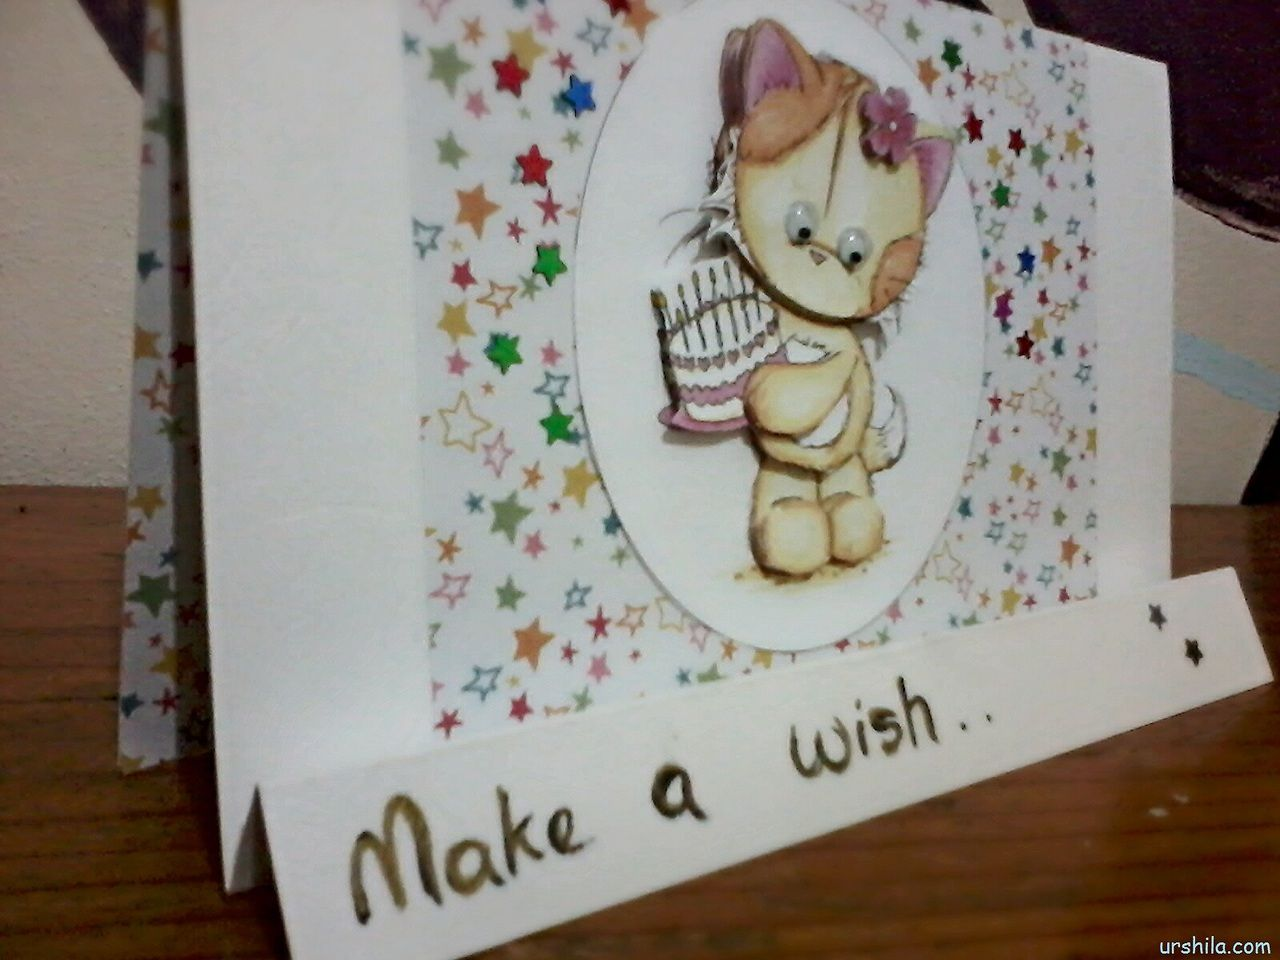 make a wish handmade birthday card using 3d picture assembling